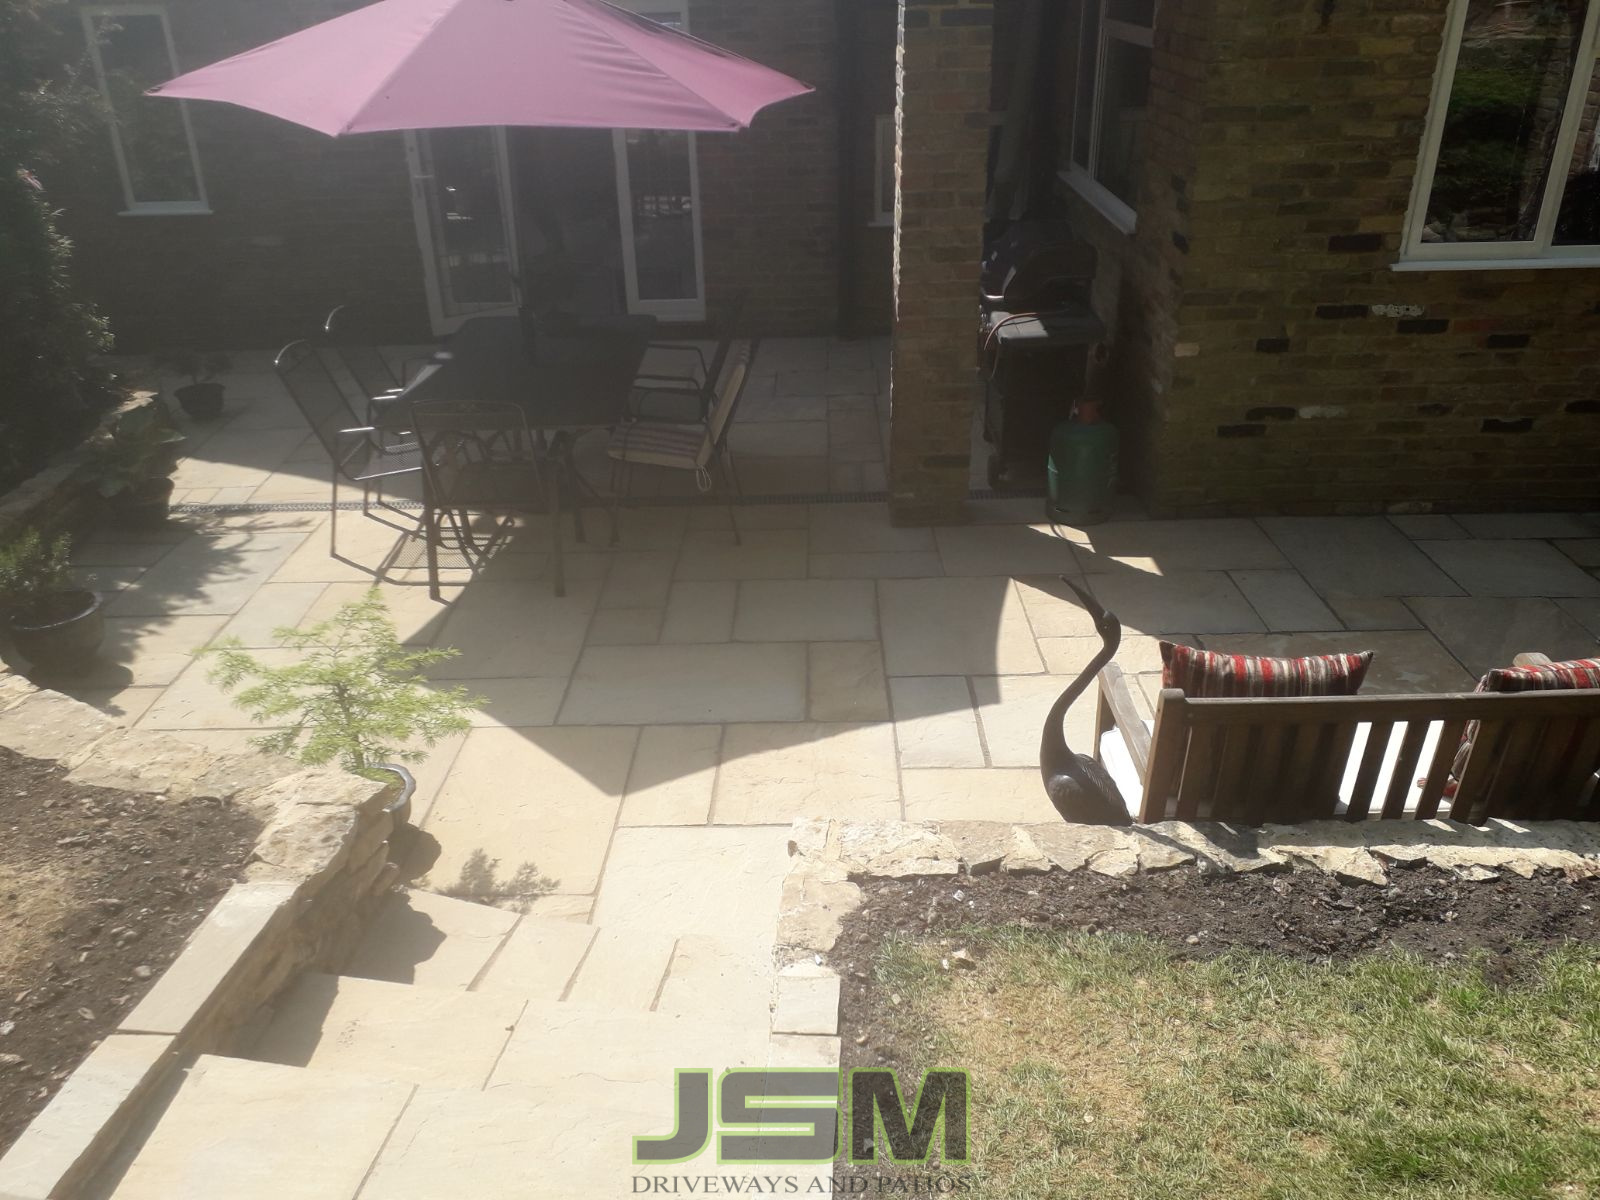 Patio Paving Company in Akeley, Milton Keynes